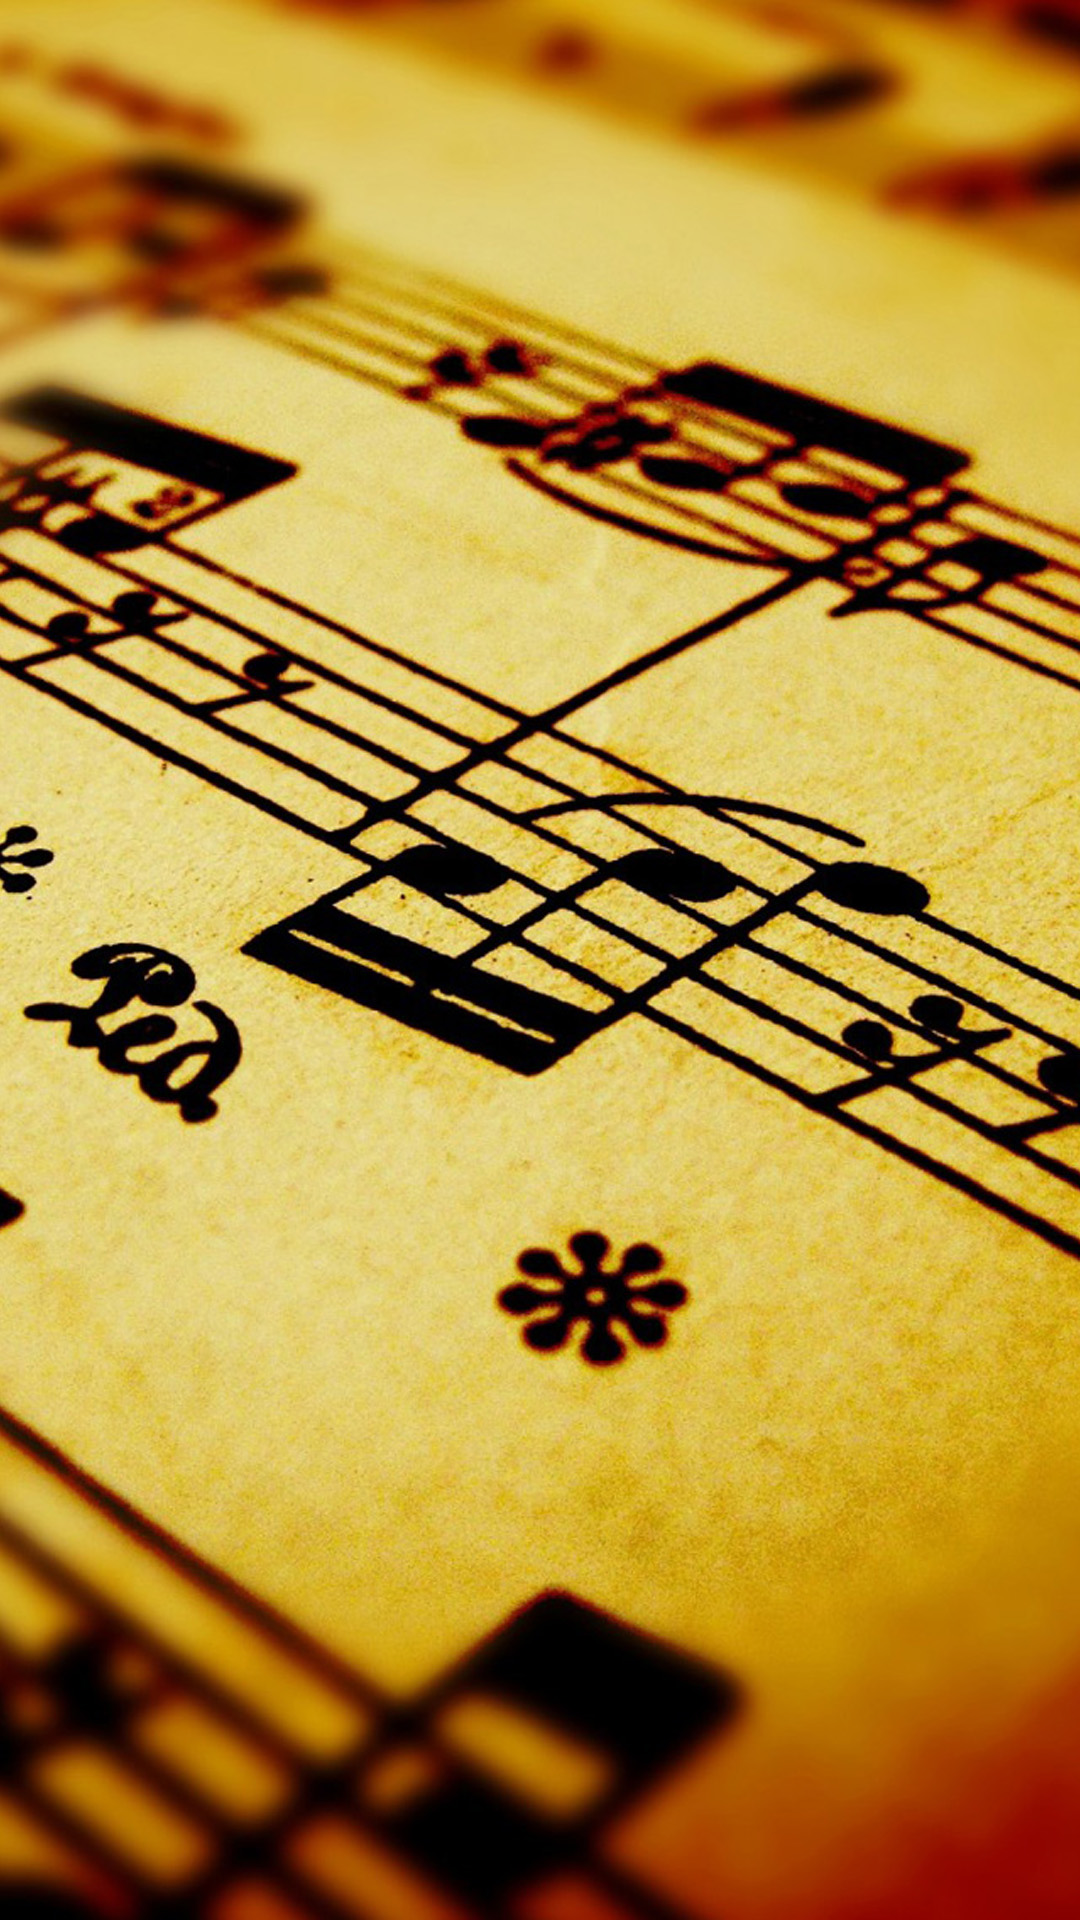 Music 81 Android Wallpaper